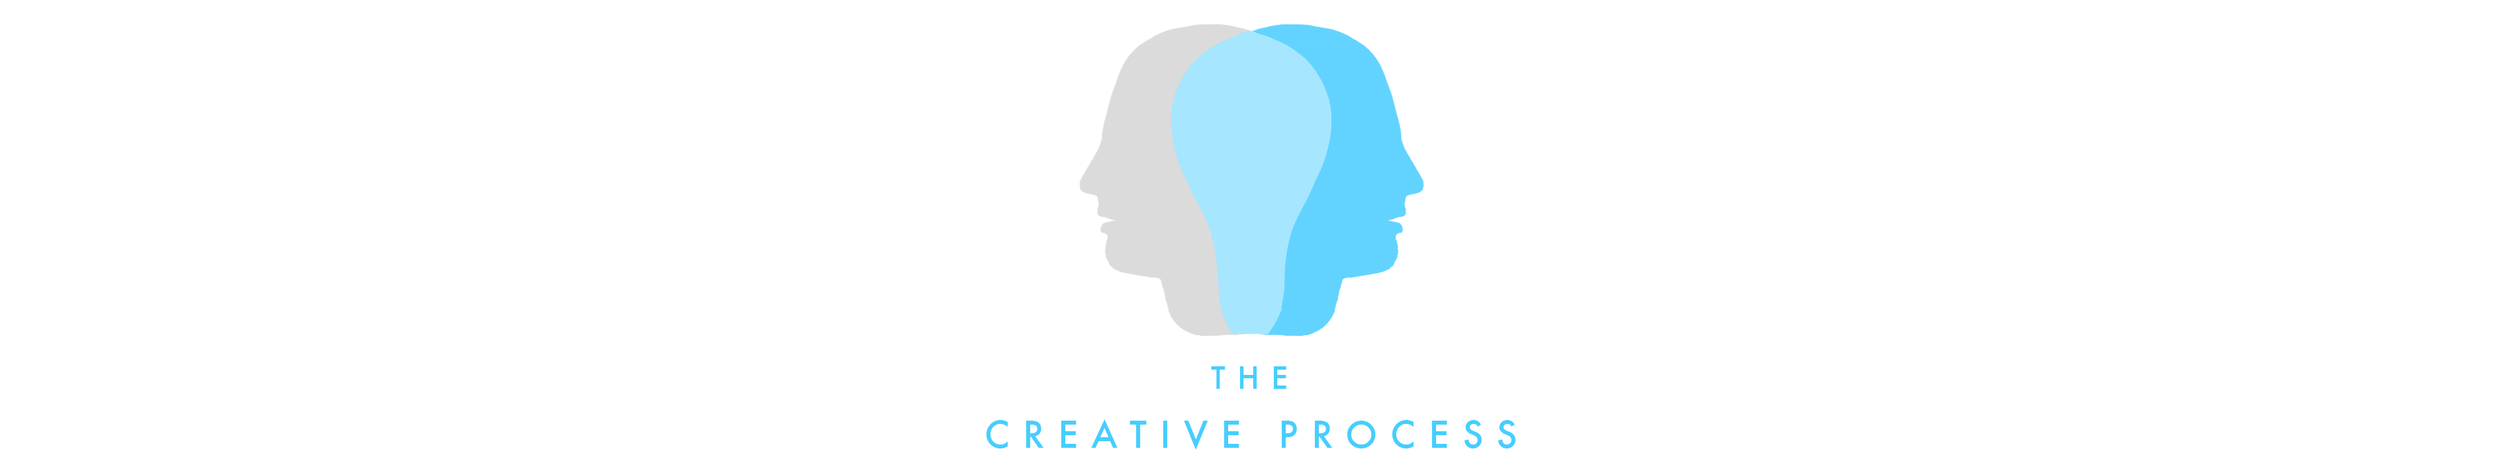 the-creative-process-logo-L.png